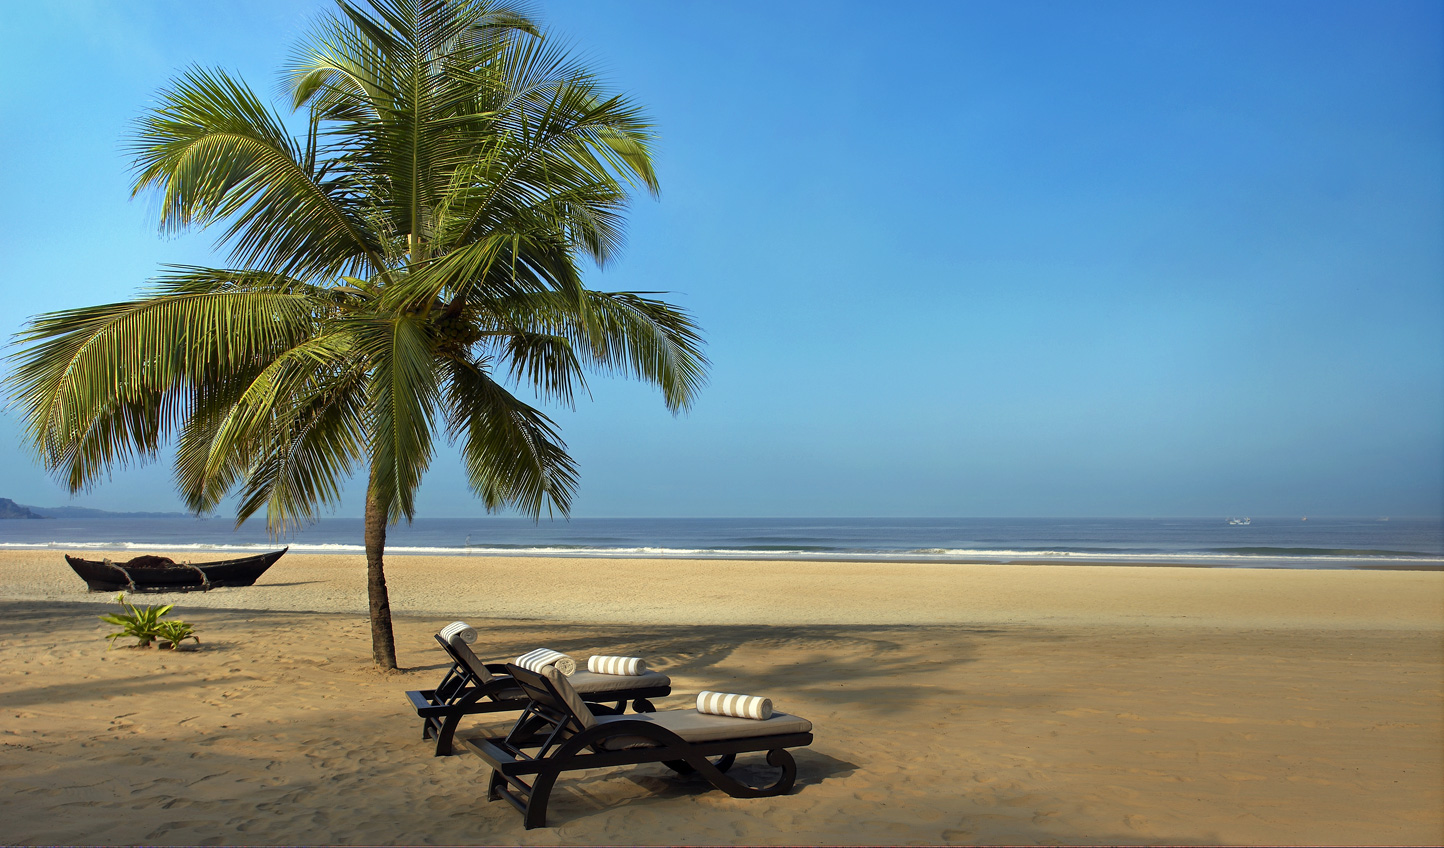 Spend a few days relaxing on the sundrenched beaches of Goa